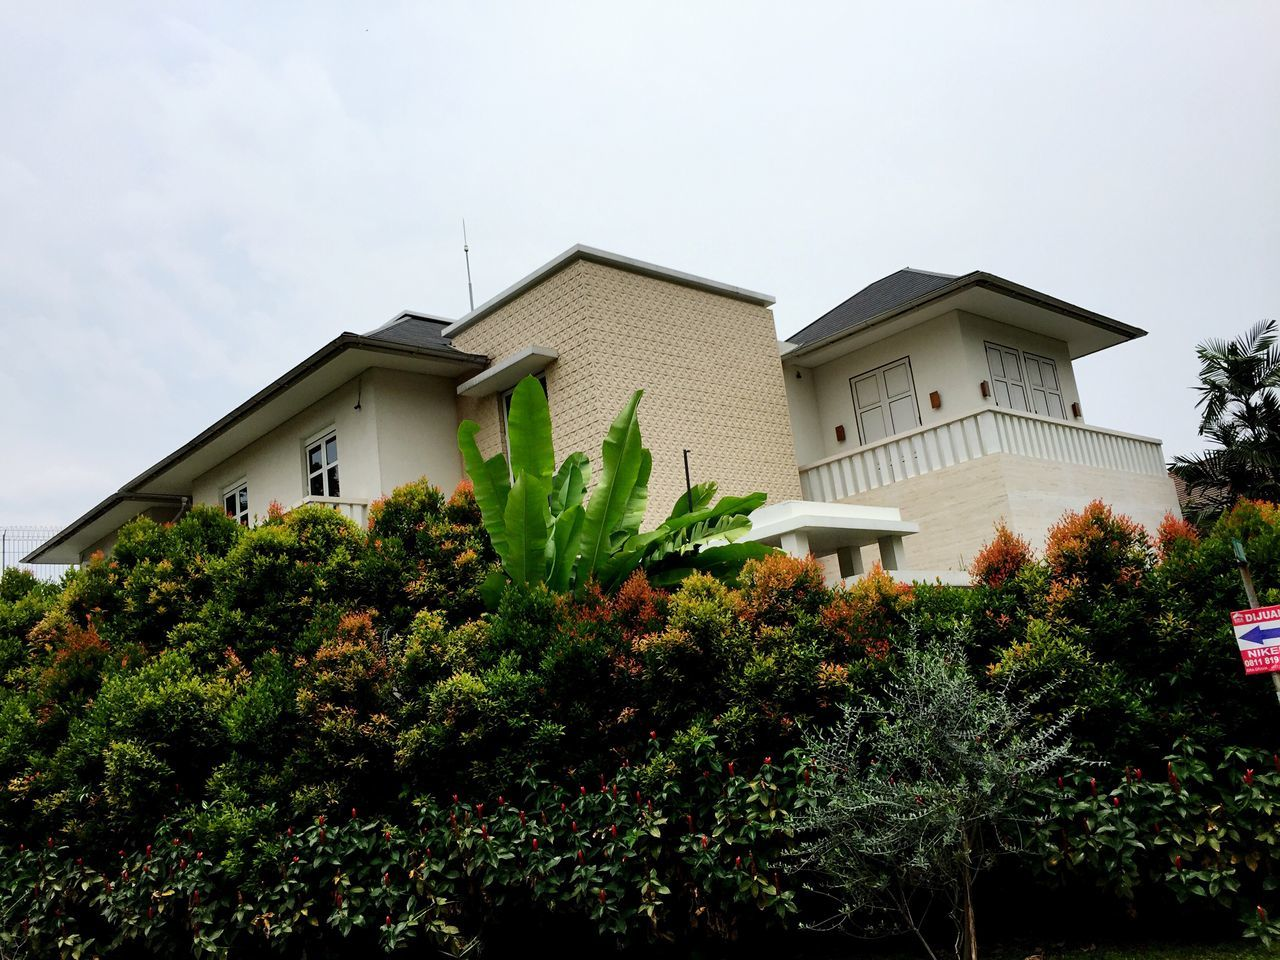 architecture, built structure, building exterior, plant, growth, house, tree, no people, day, nature, outdoors, low angle view, sky, beauty in nature